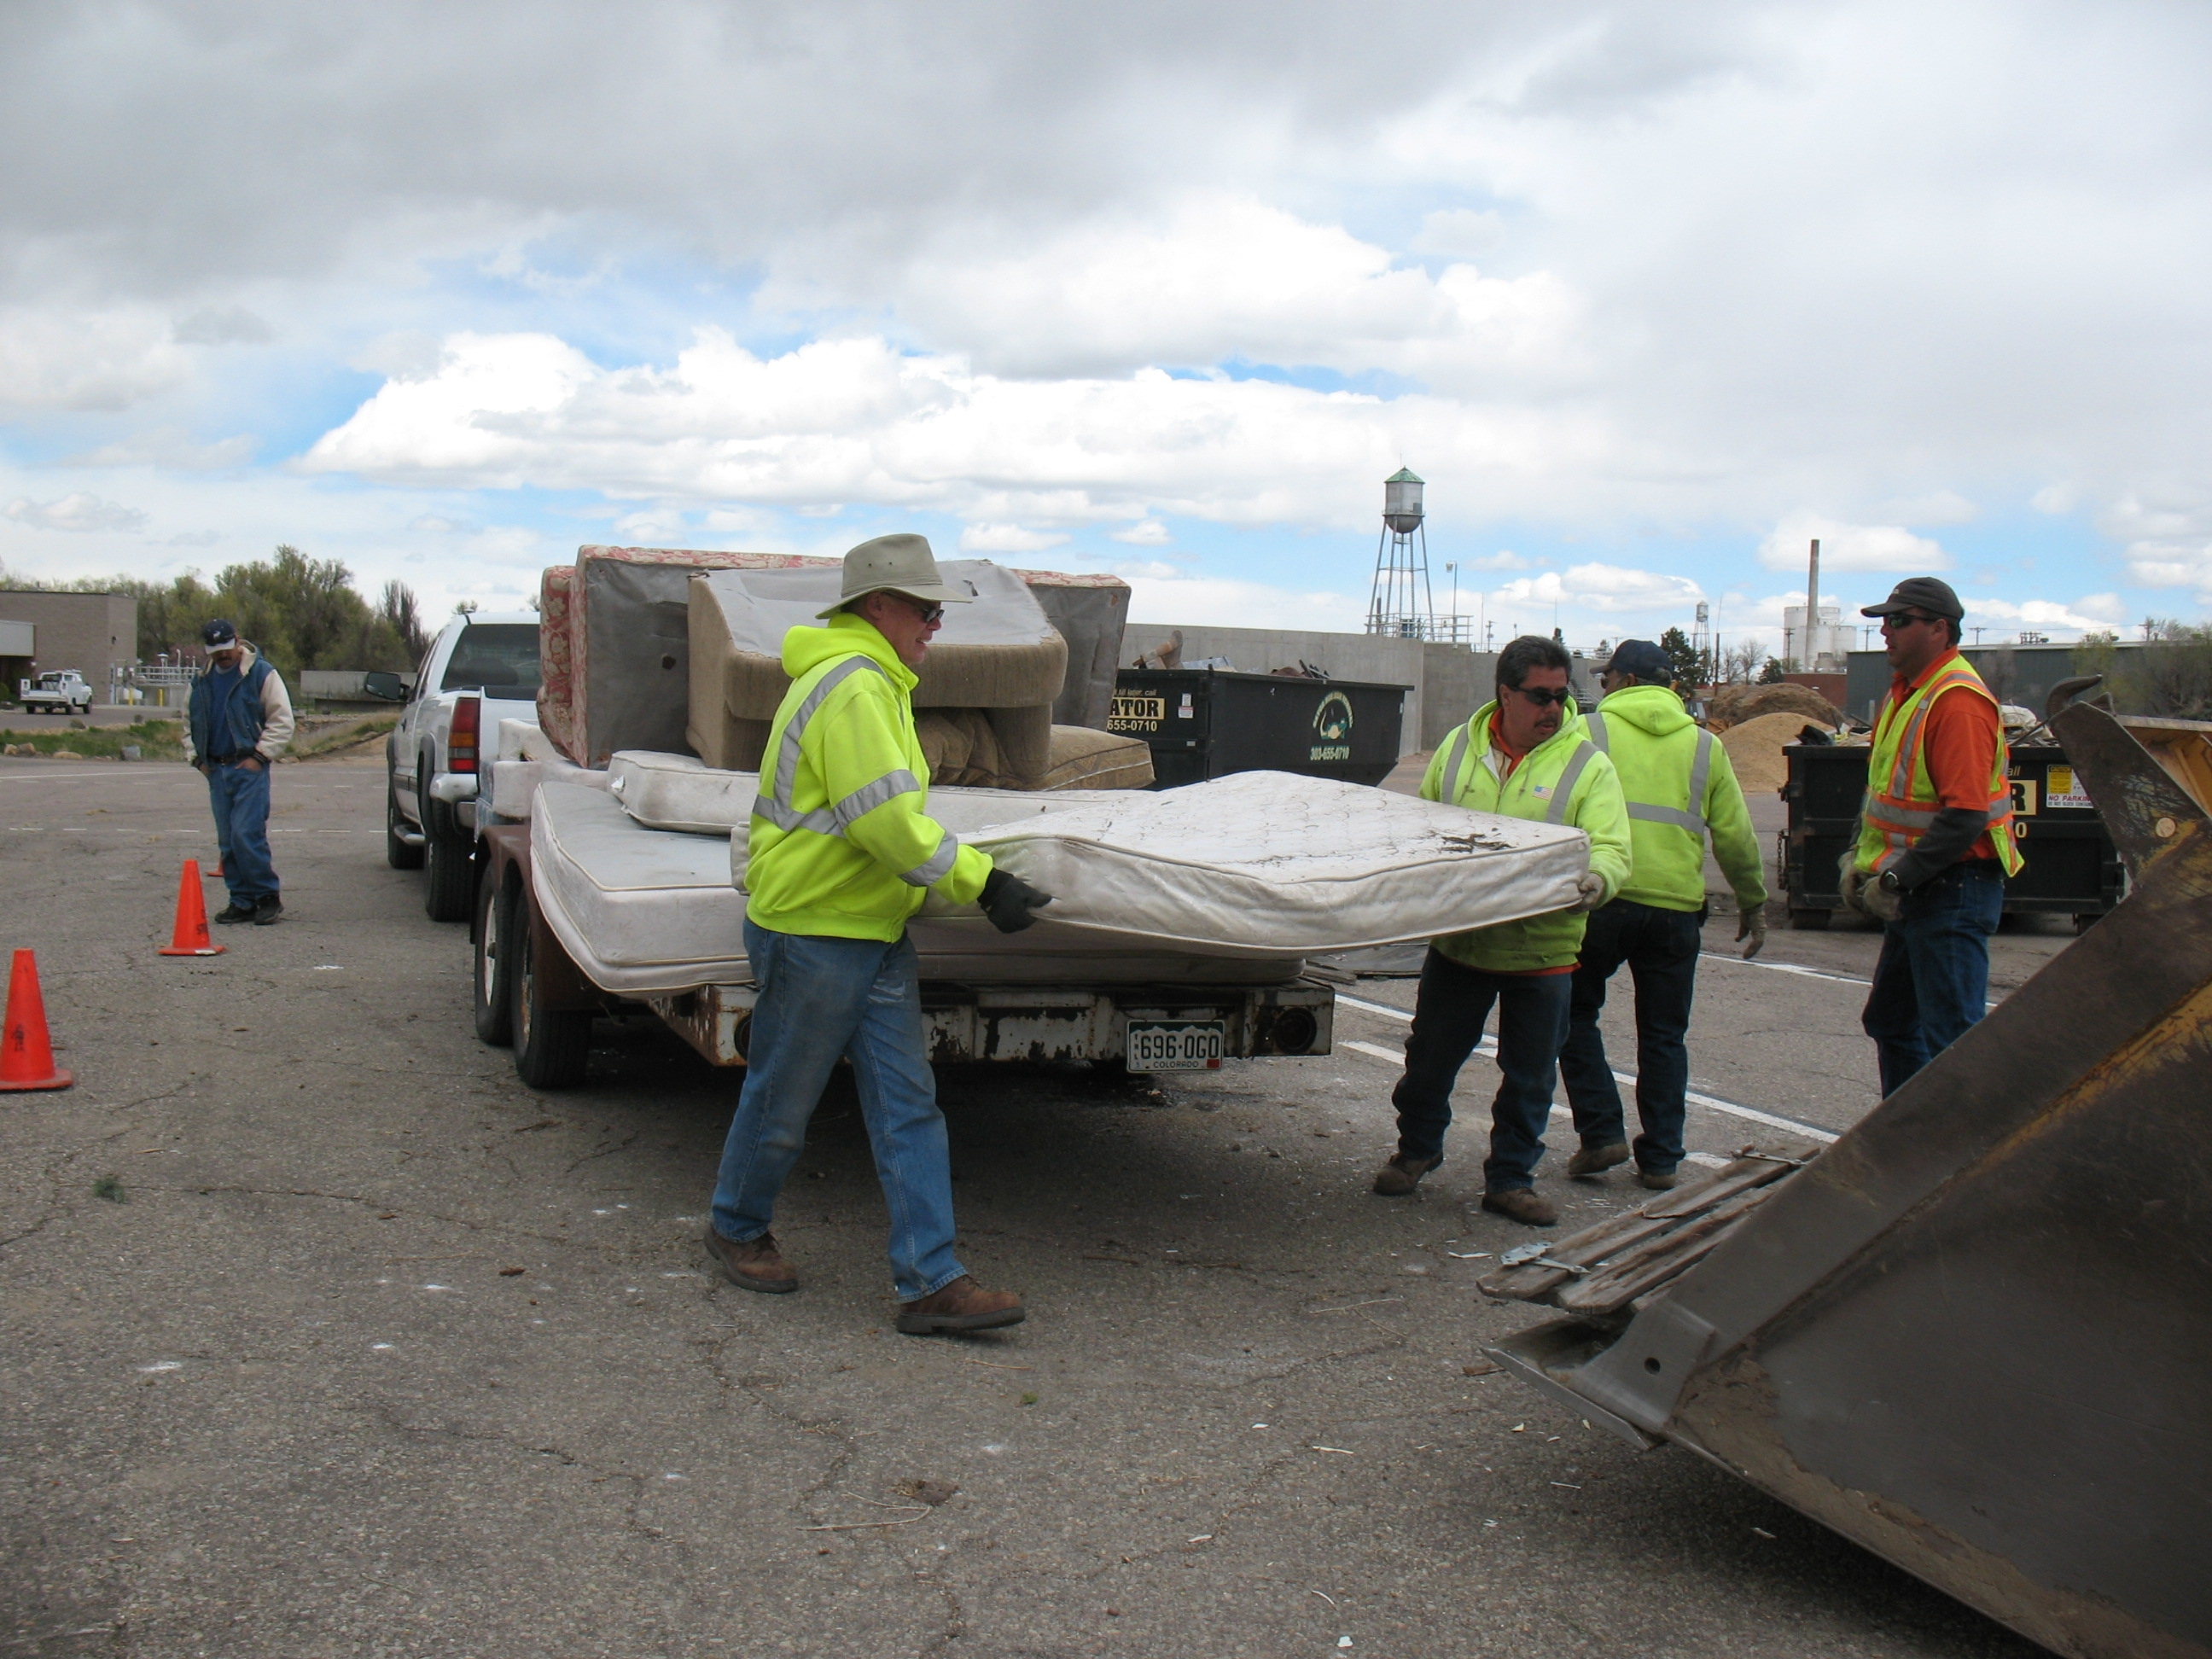 Unloading Truck at Trash Bash 2011